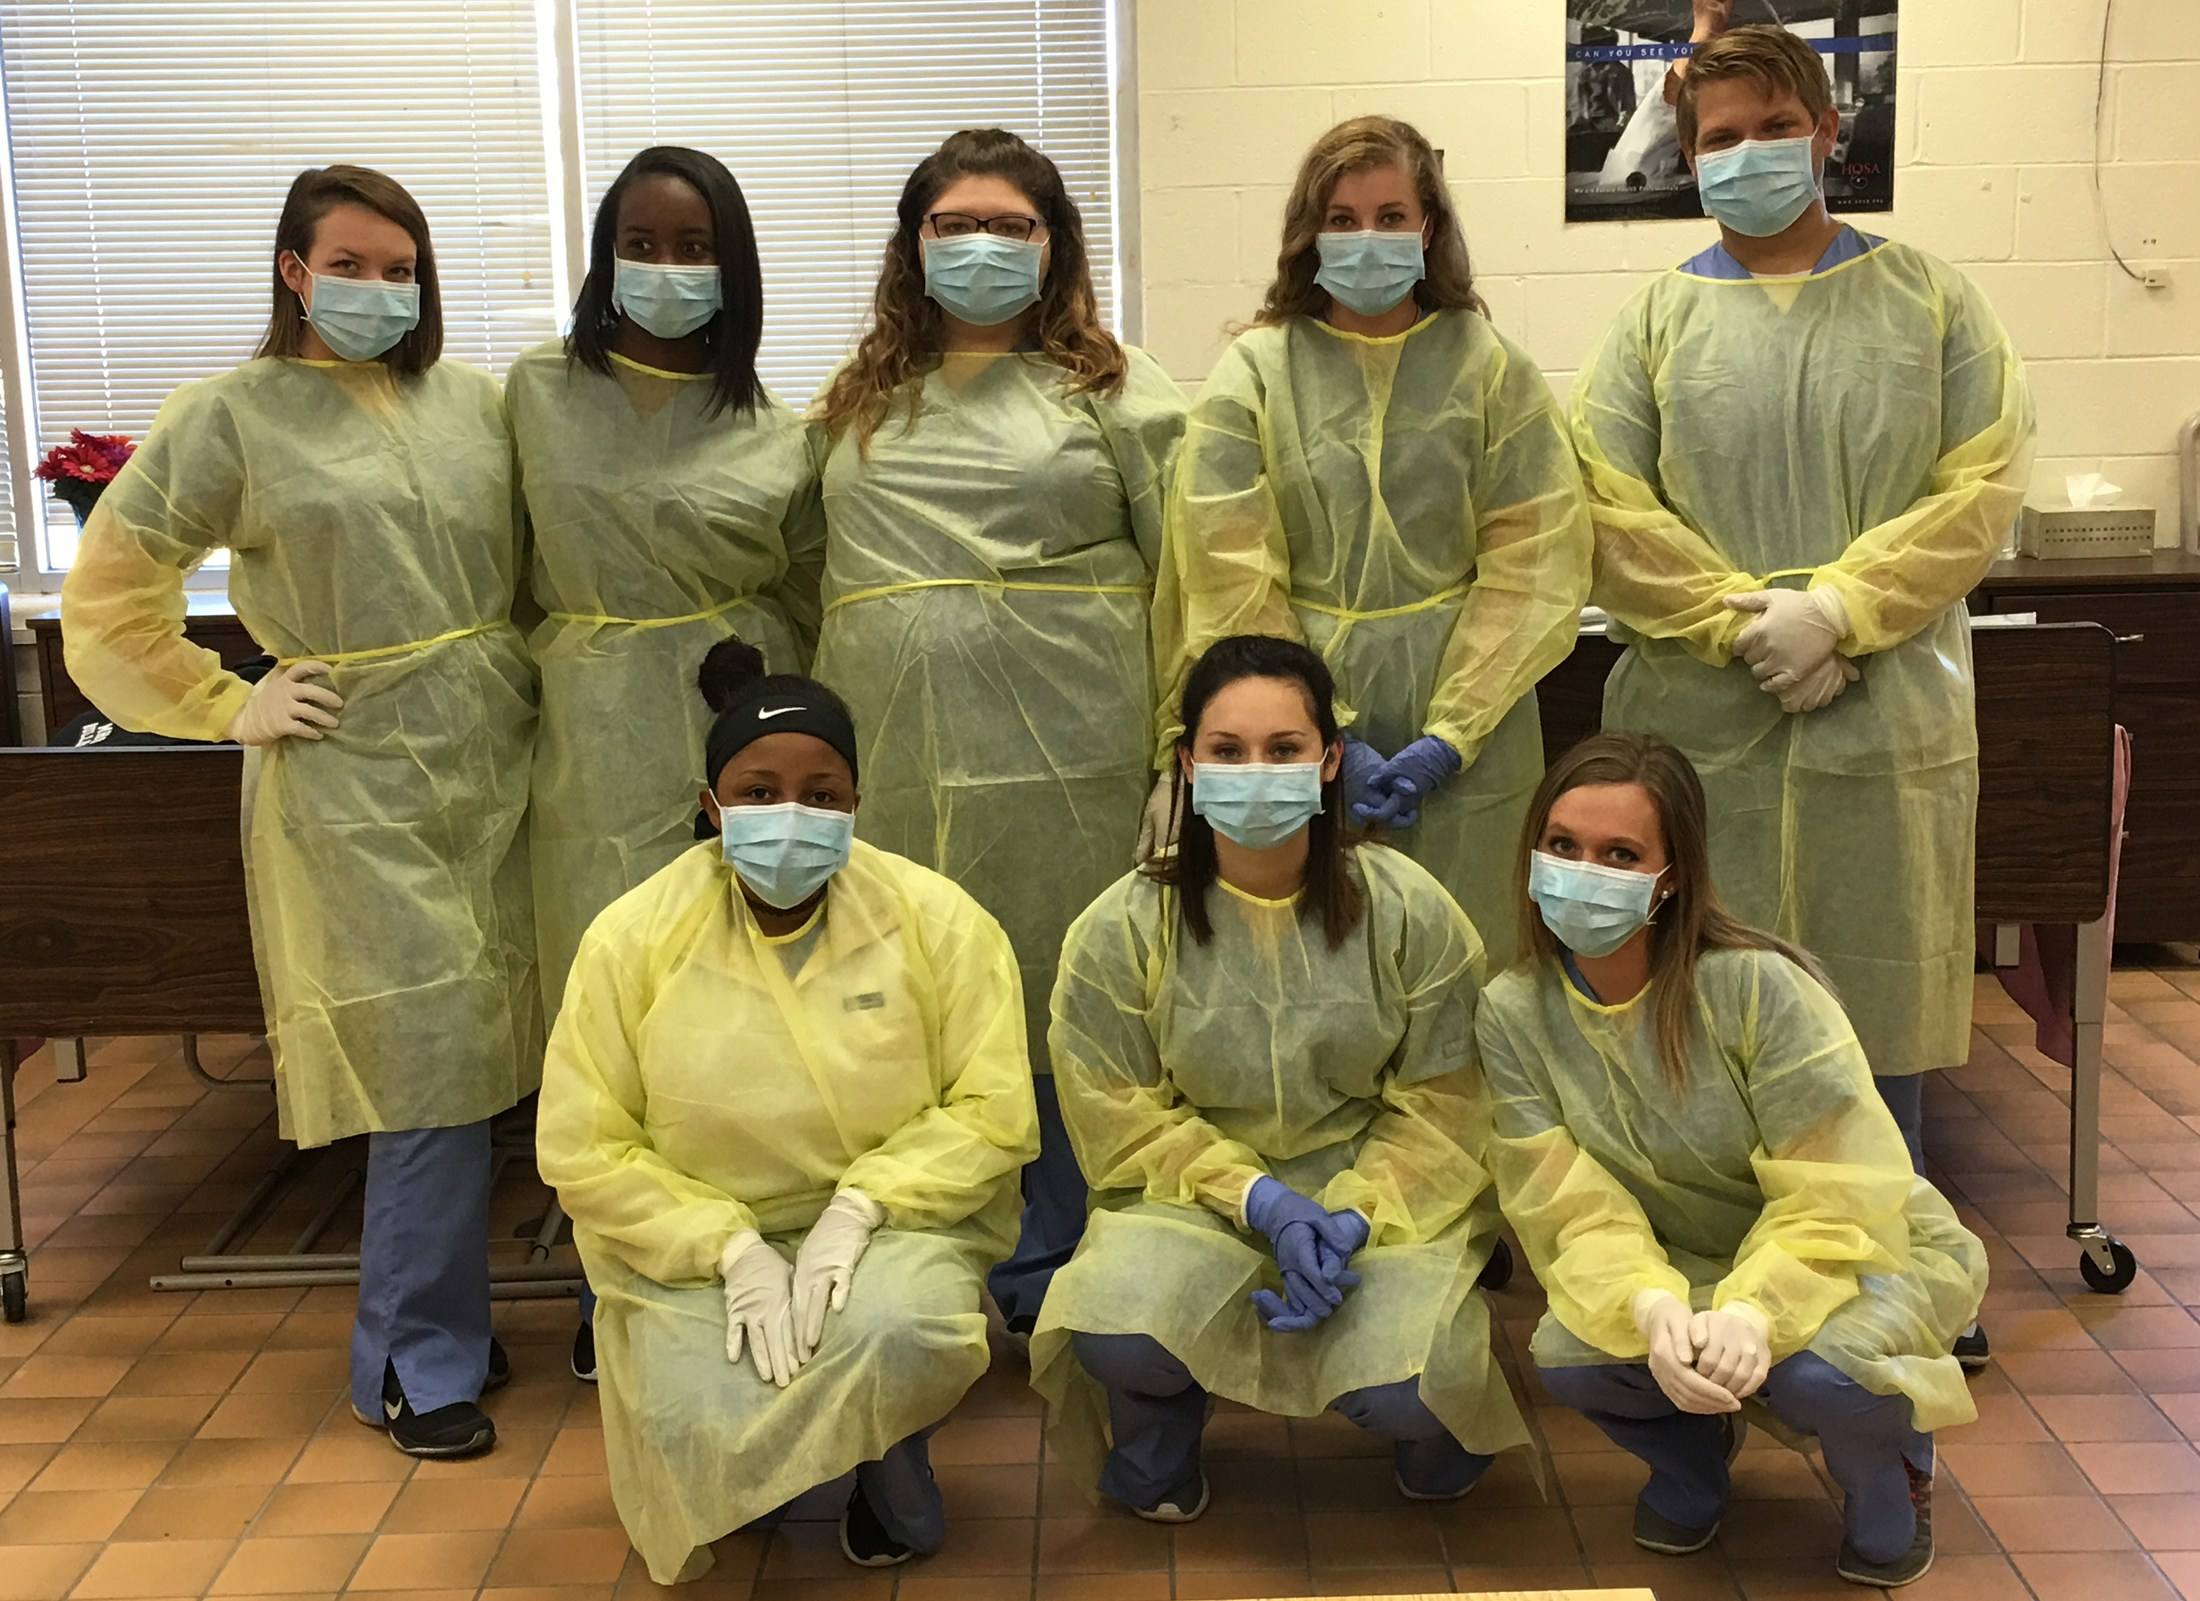 group photo in scrubs and gowns